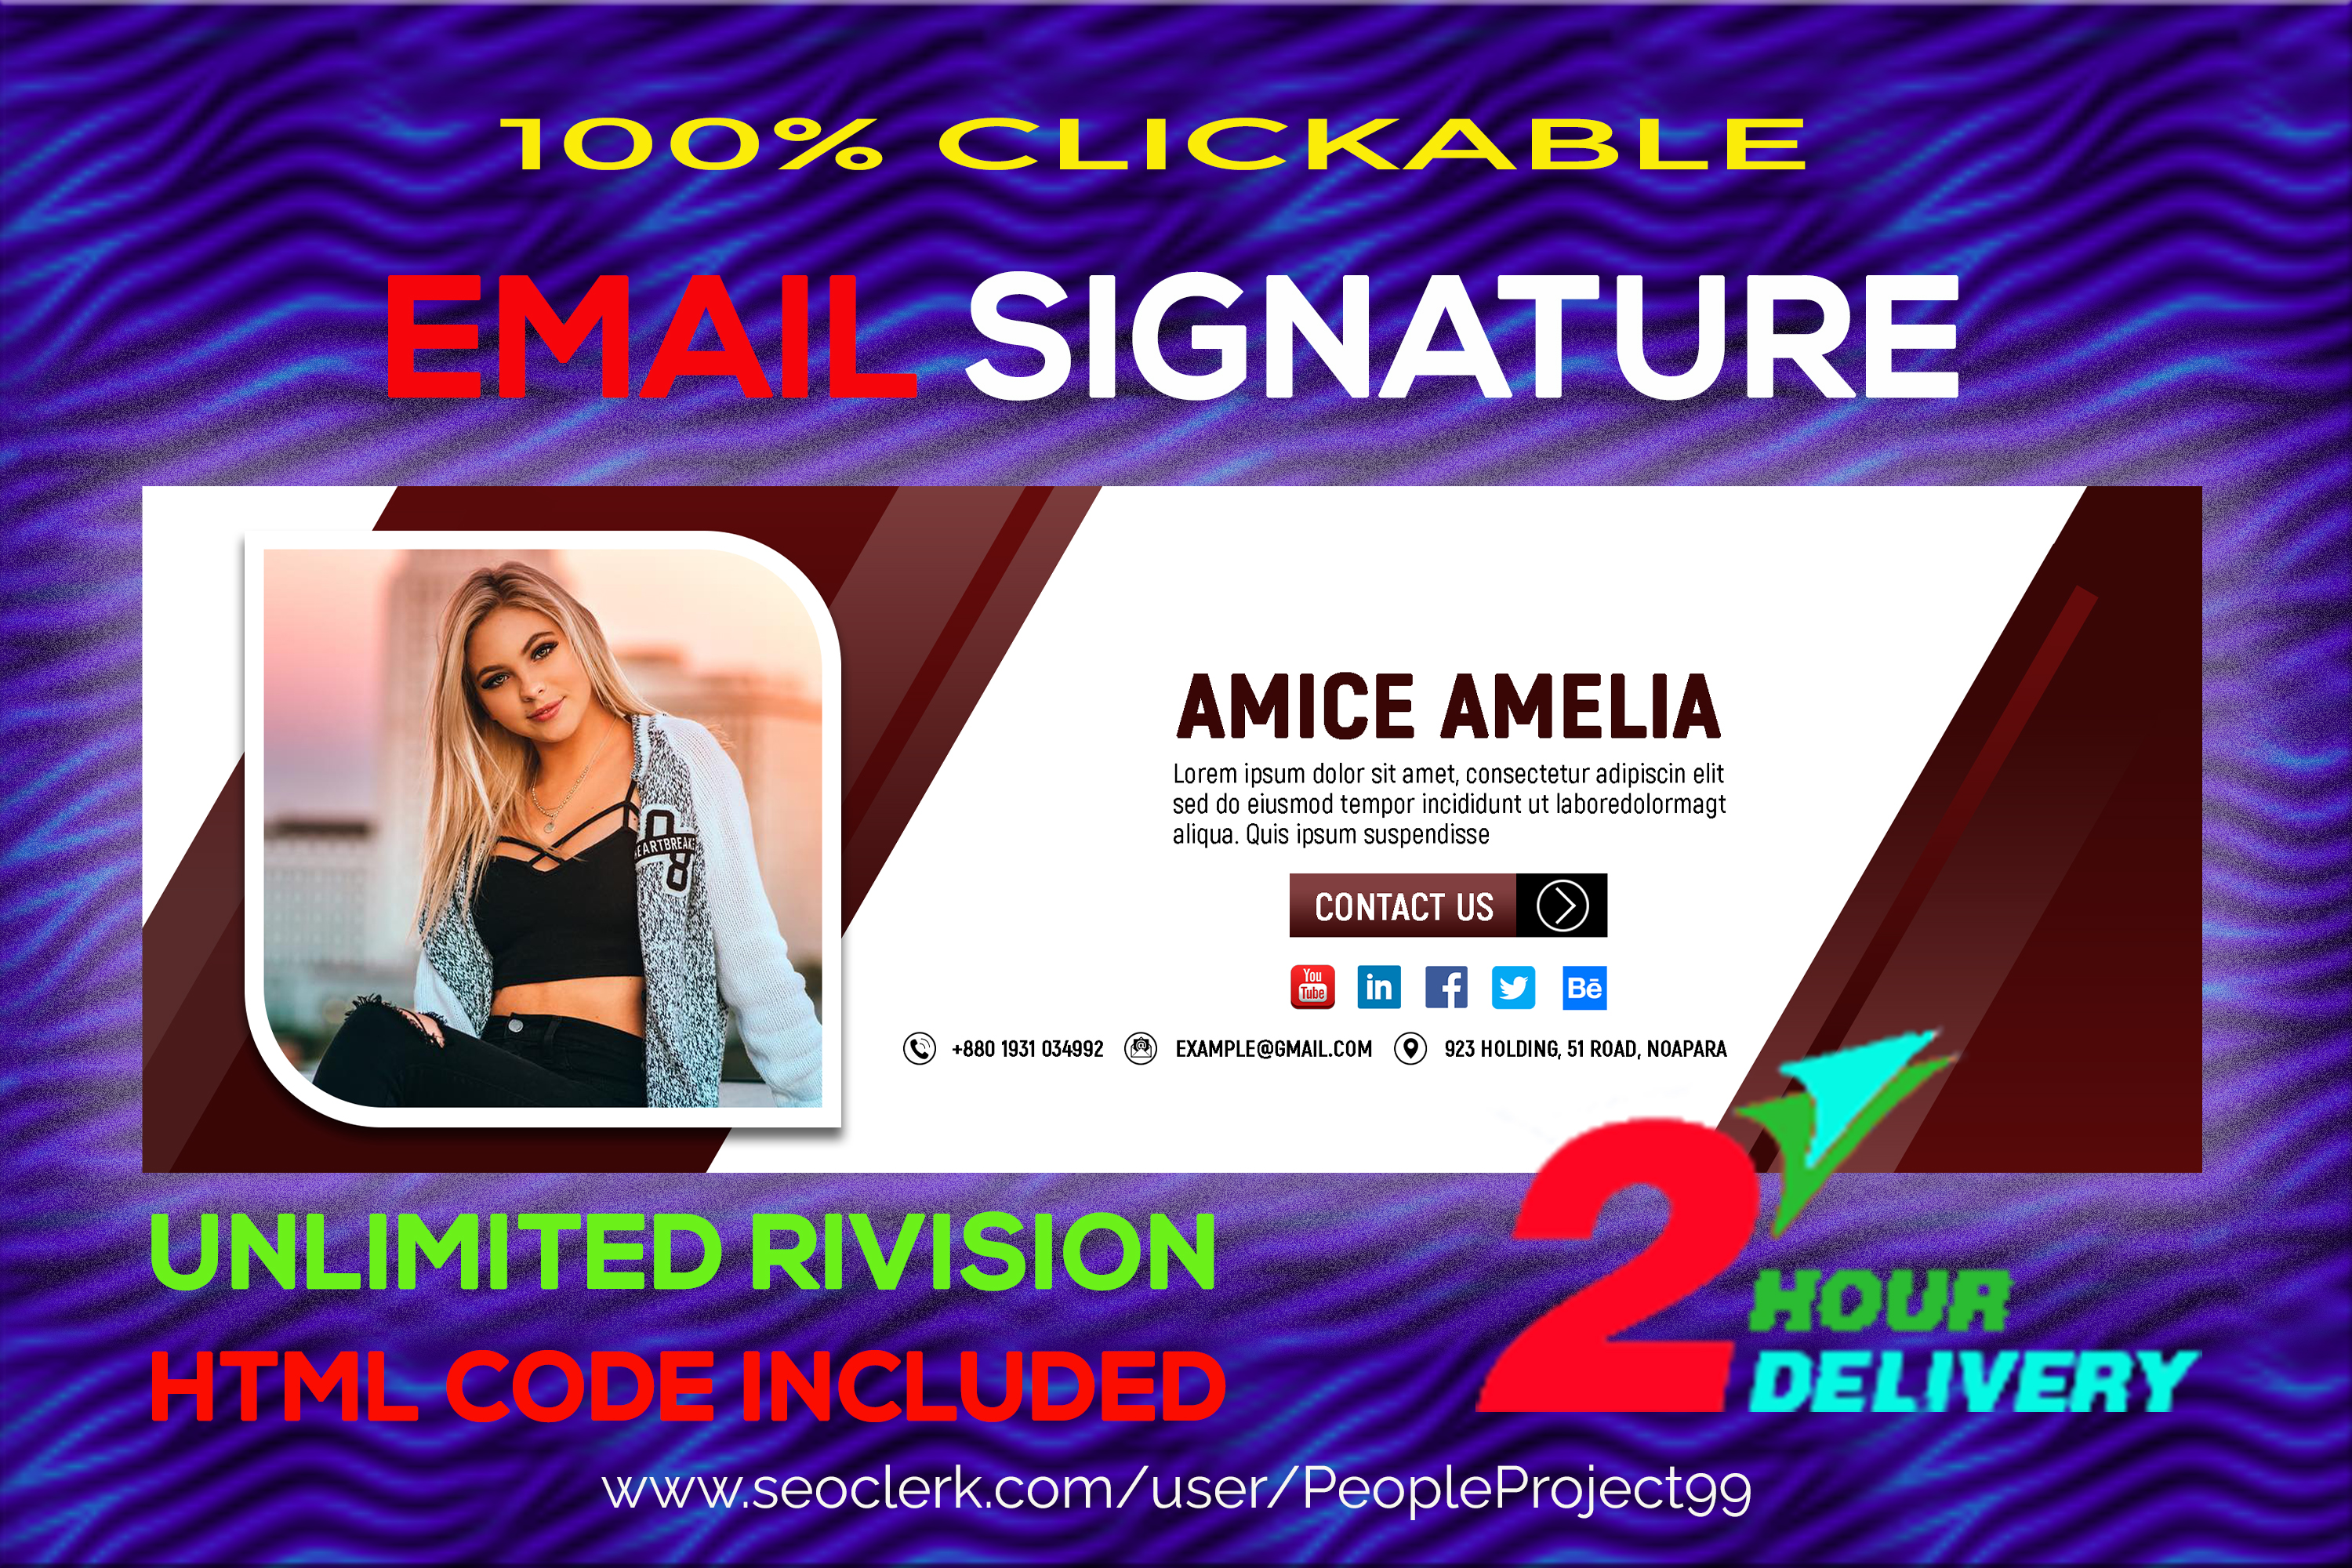 I will be design your interactive HTML email signature in 2 hours